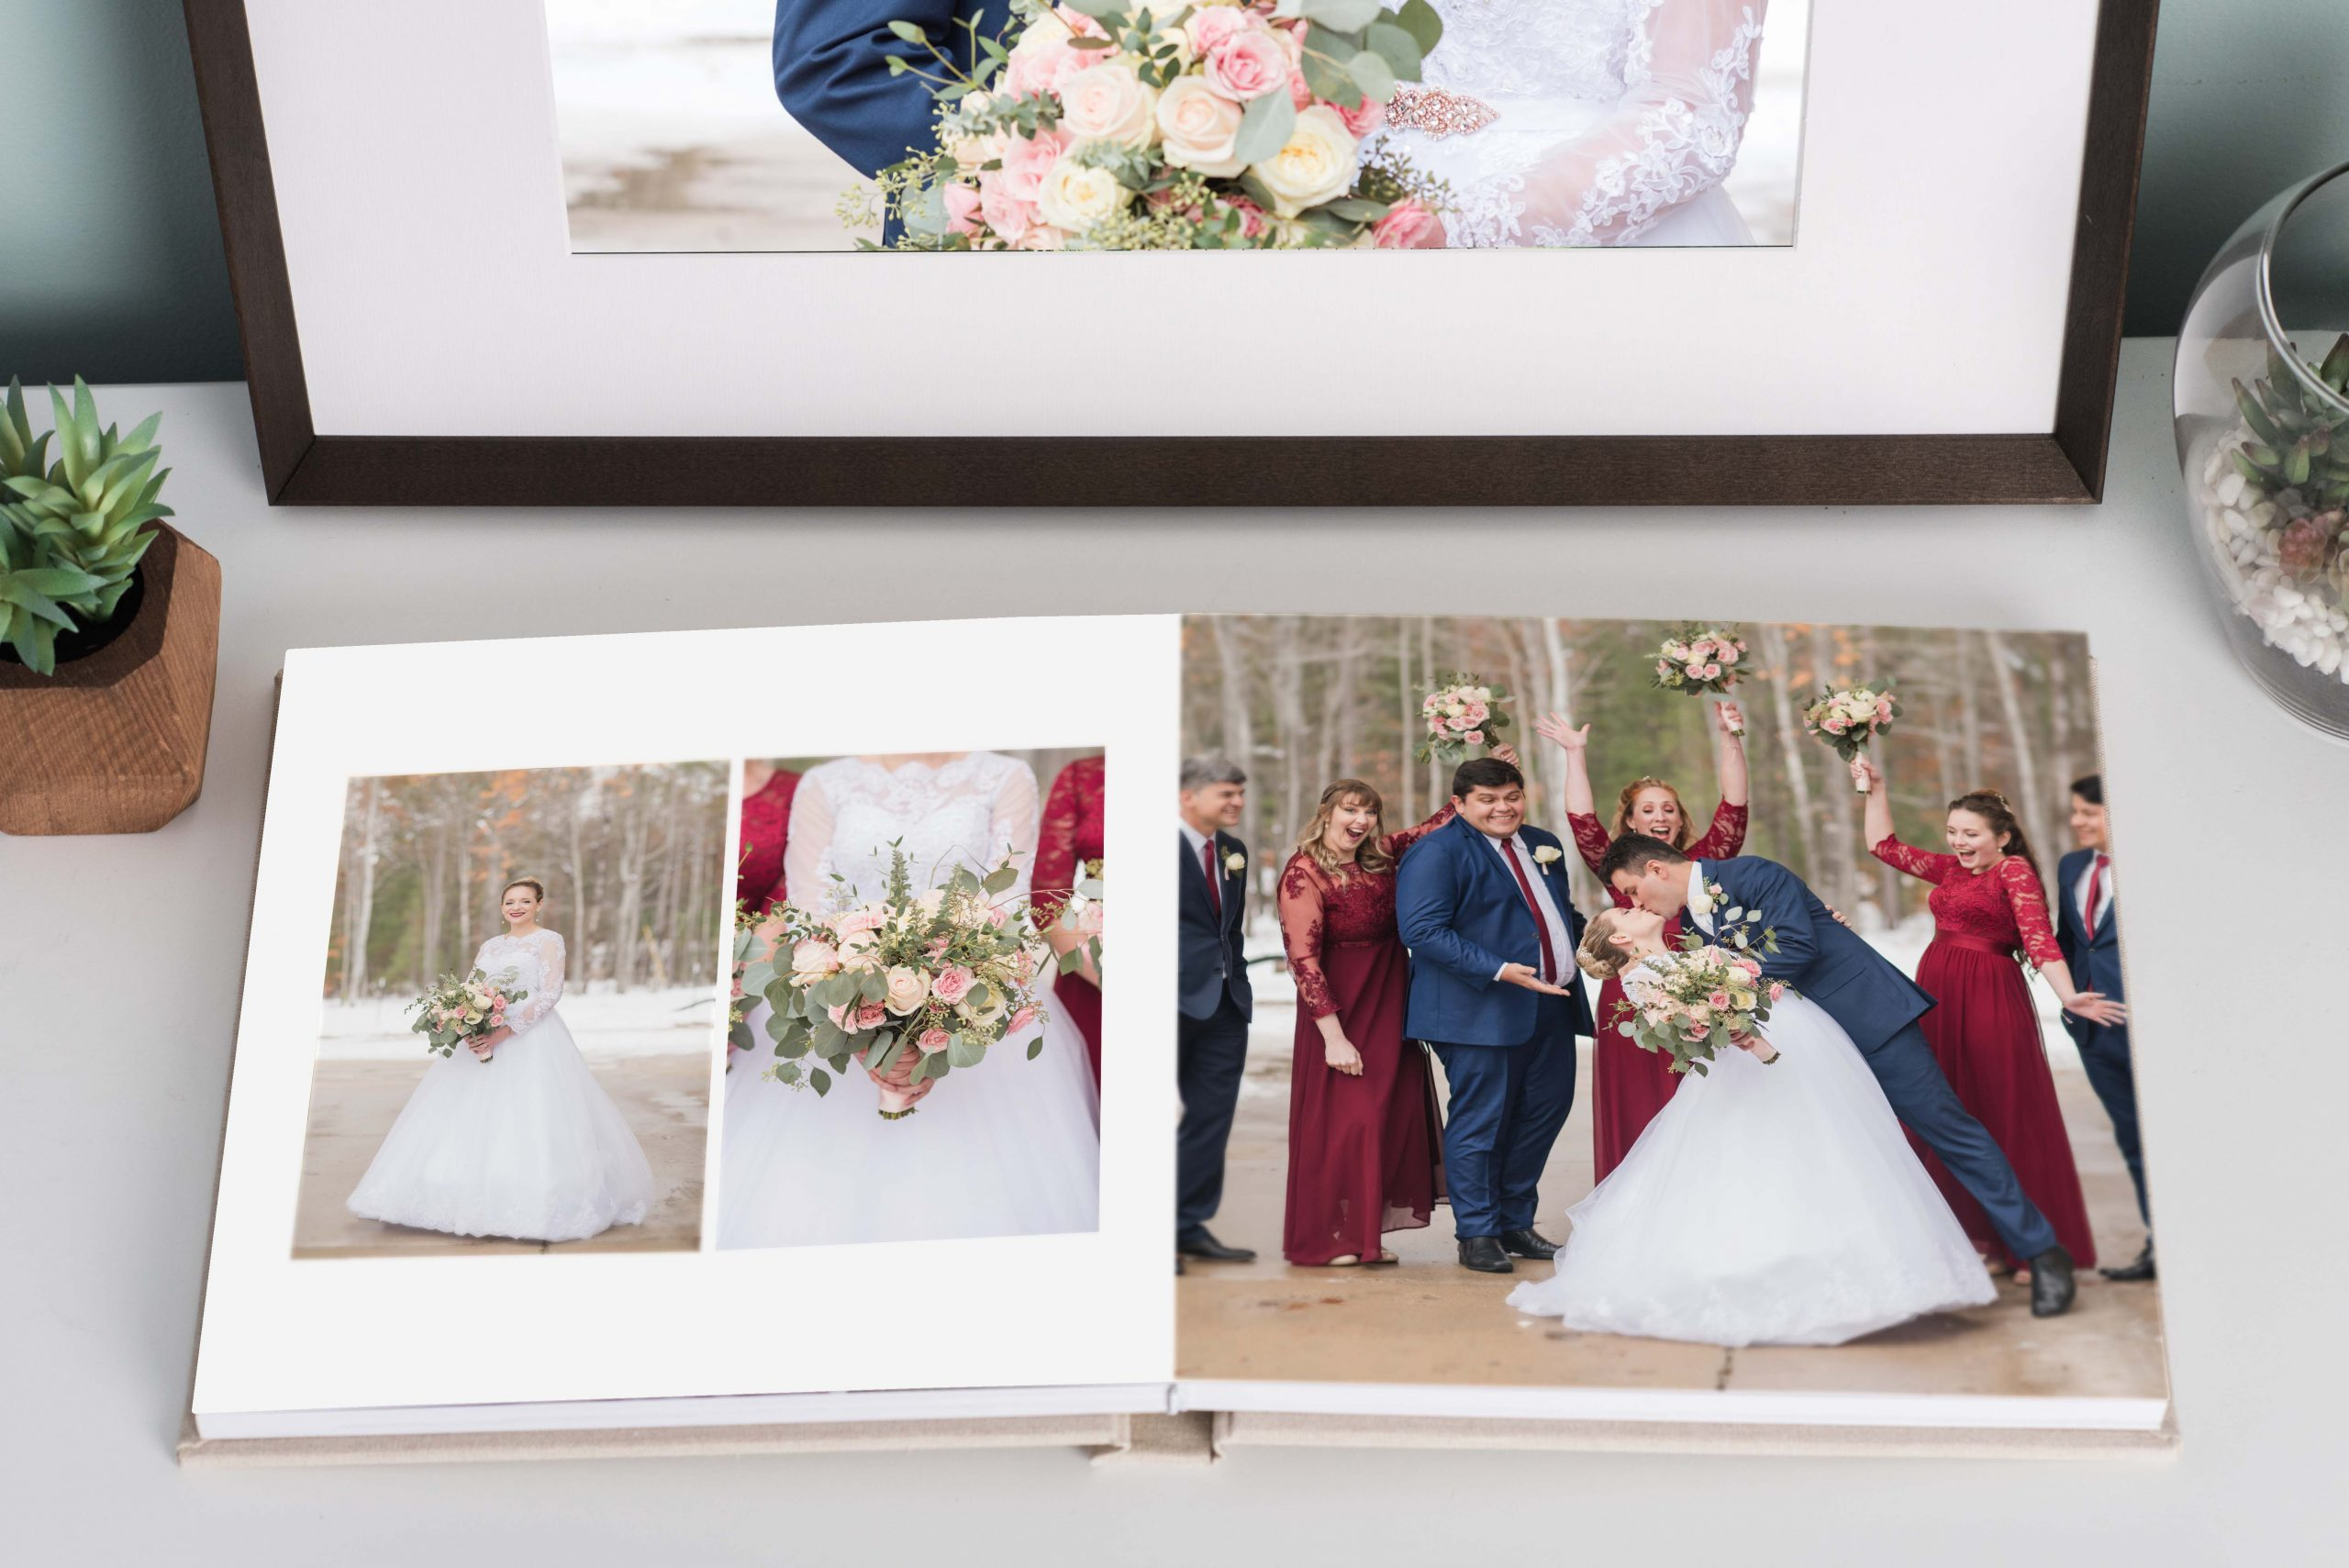 sample framed pictures and album from a winter wedding